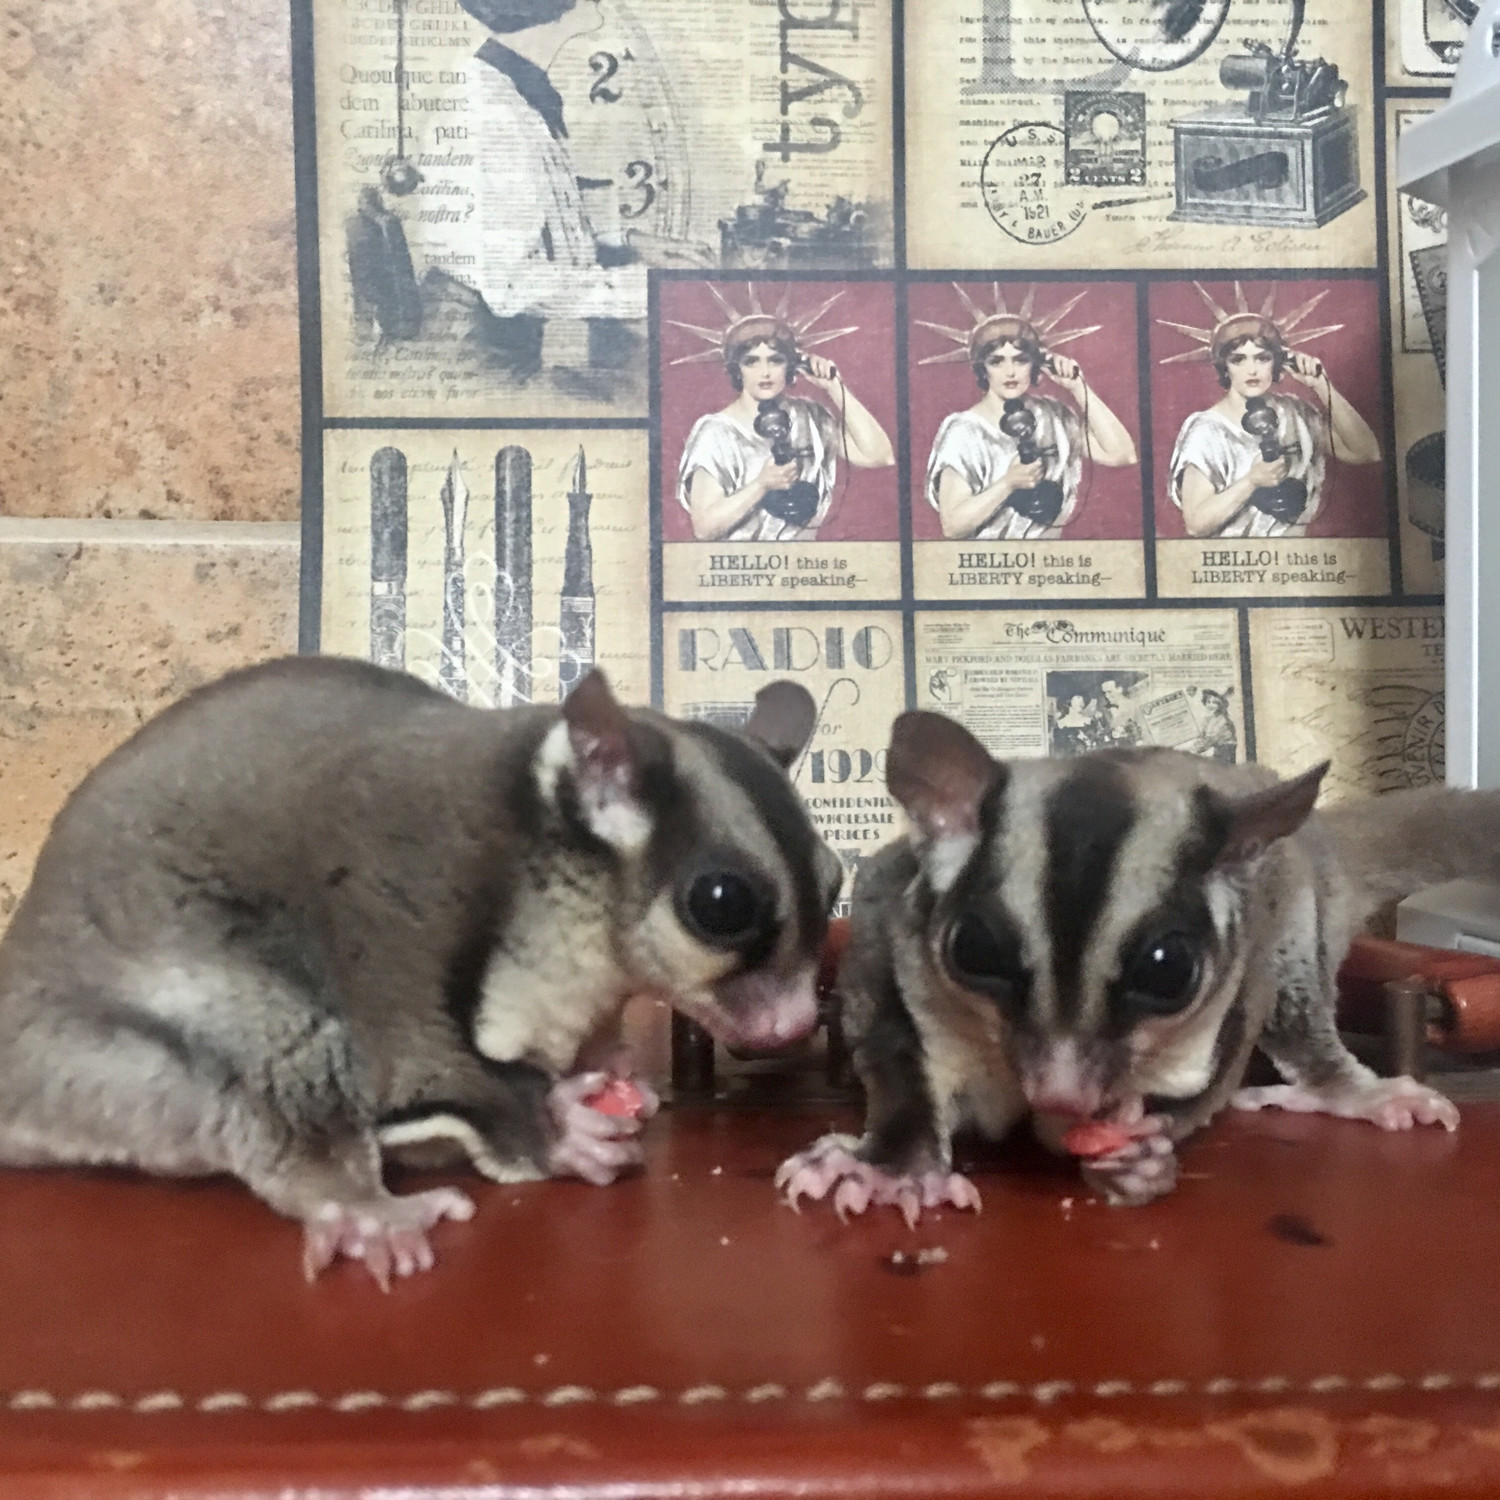 James and Panda are sugar glider brothers, both almost two years old, who live with resident Linda DiGrazia in Oceanside. James went missing for a week last month.